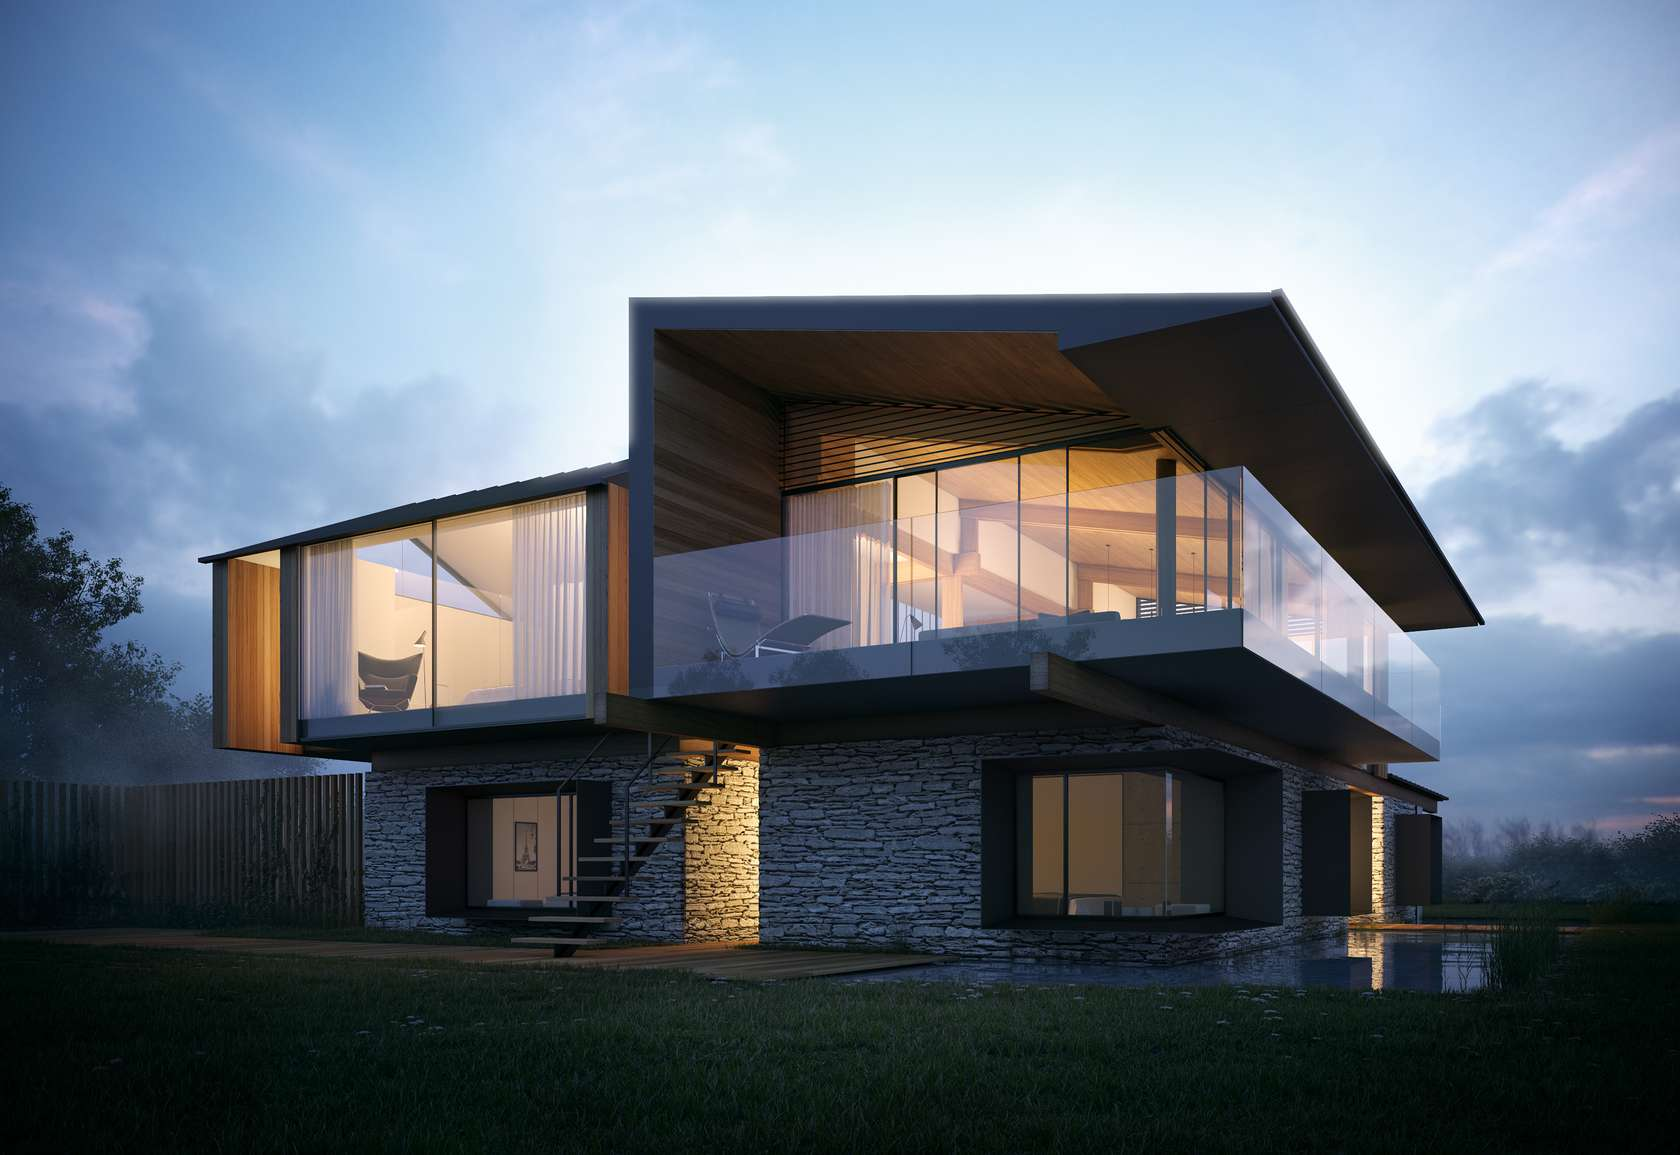 Glass Balustrading, Evening Lighting, Home on the Gower Peninsula in South Wales